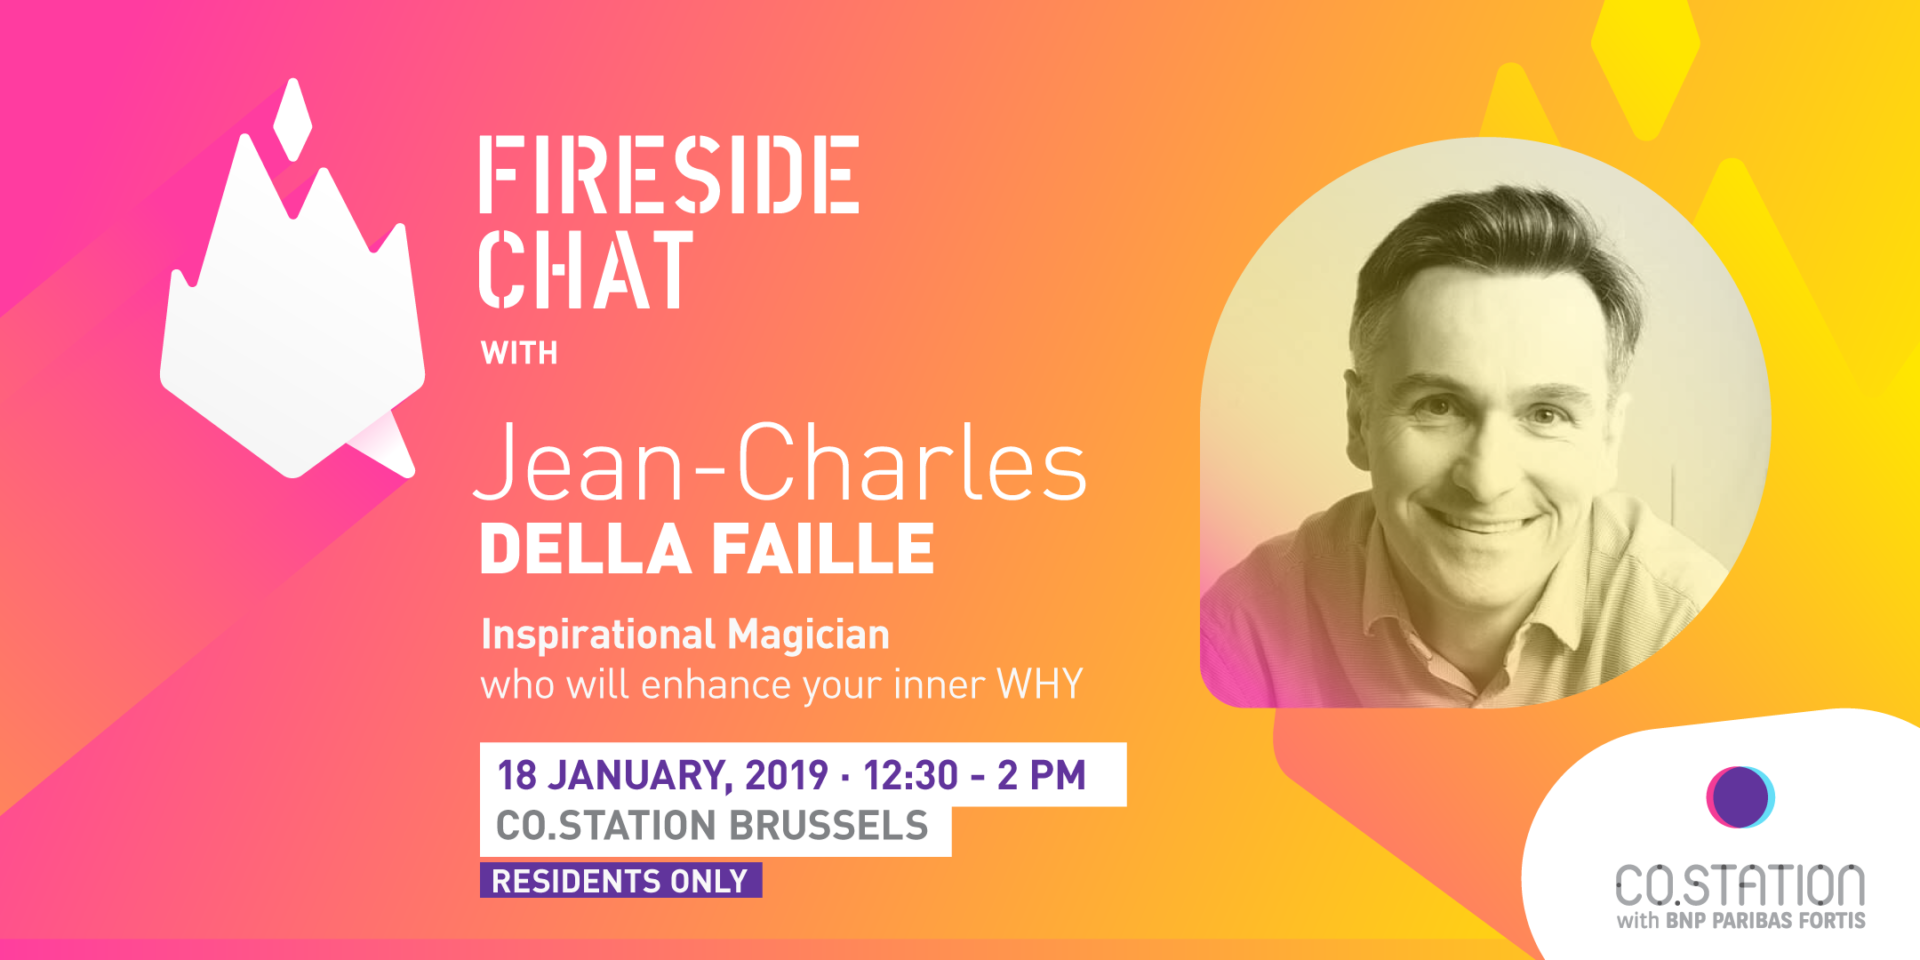 Co.Station Events | Fireside Chat with Jean-Charles della Faille